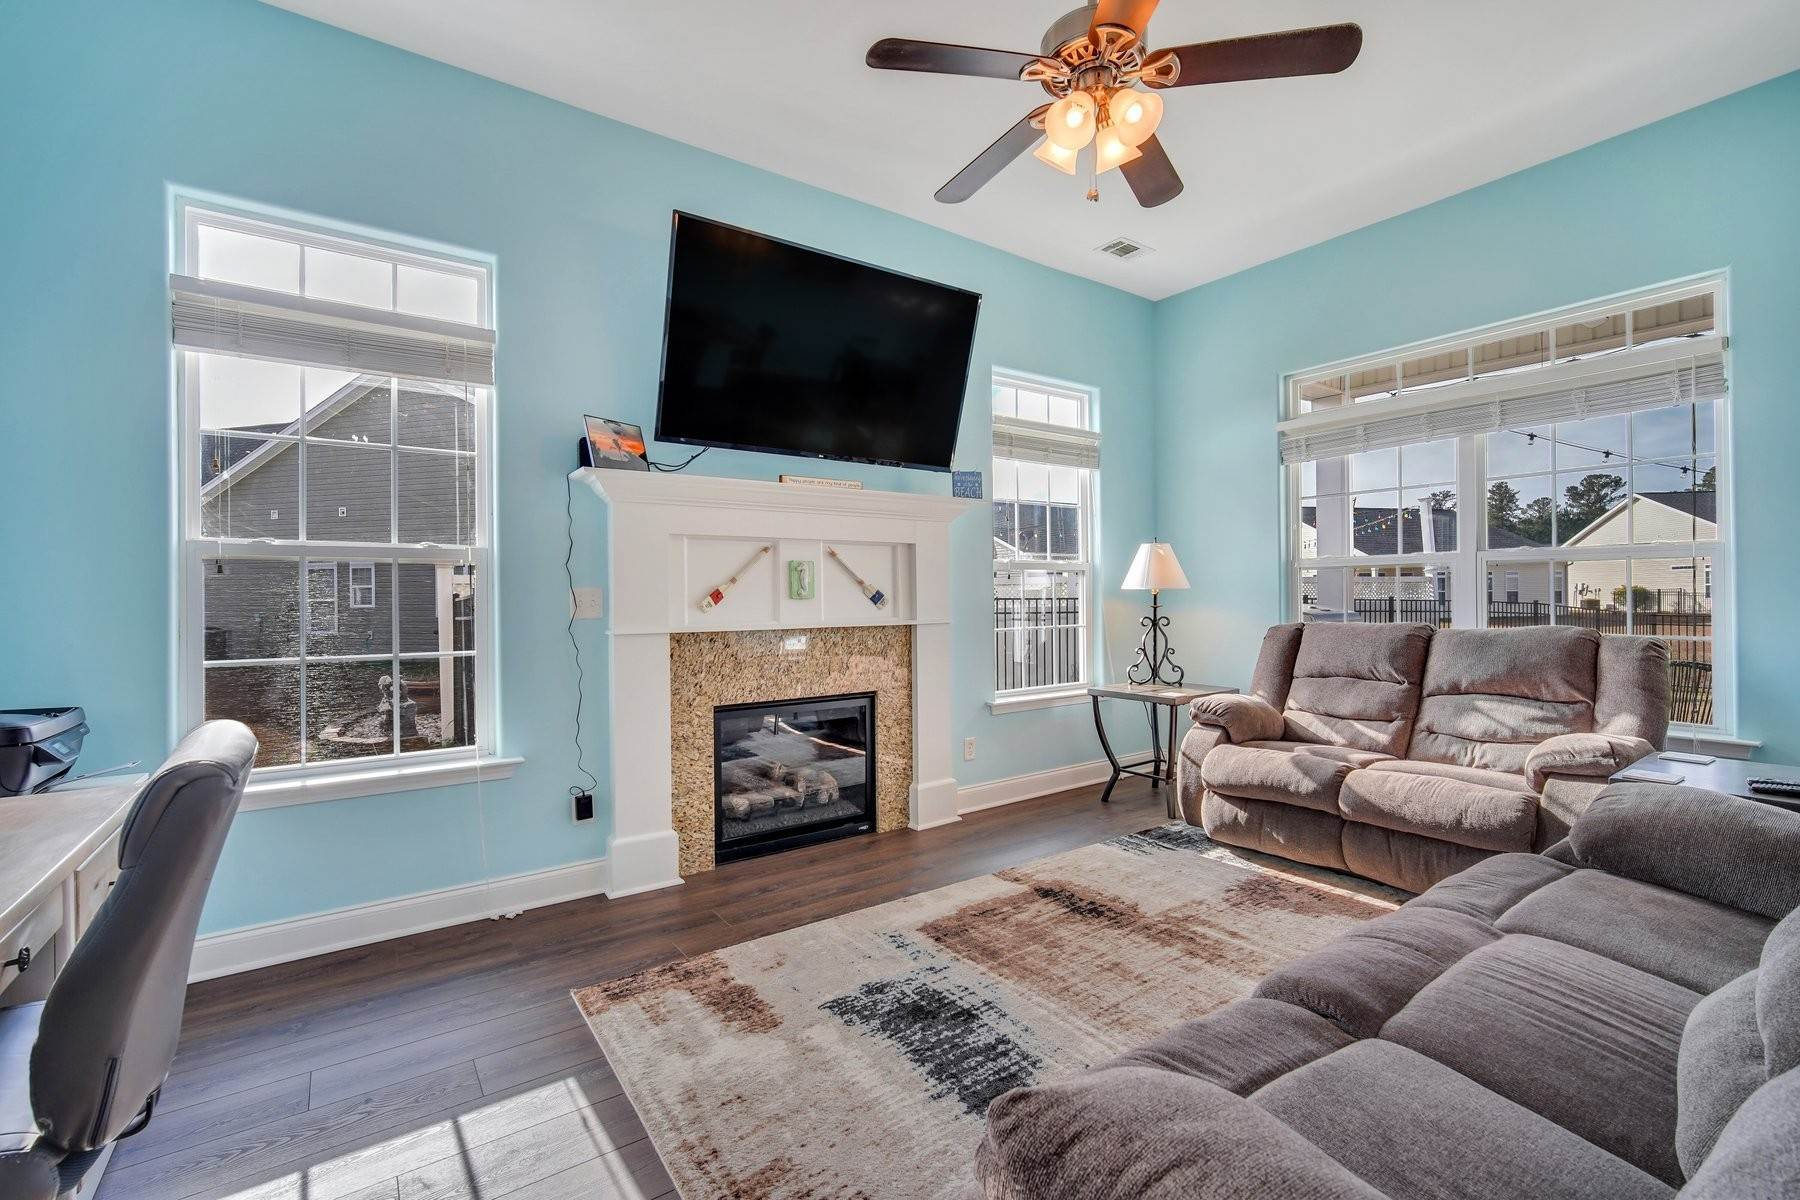 7. Single Family Homes for Sale at May Model in Hearthstone Lake 749 Hearthstone Drive Ridgeland, South Carolina 29936 United States